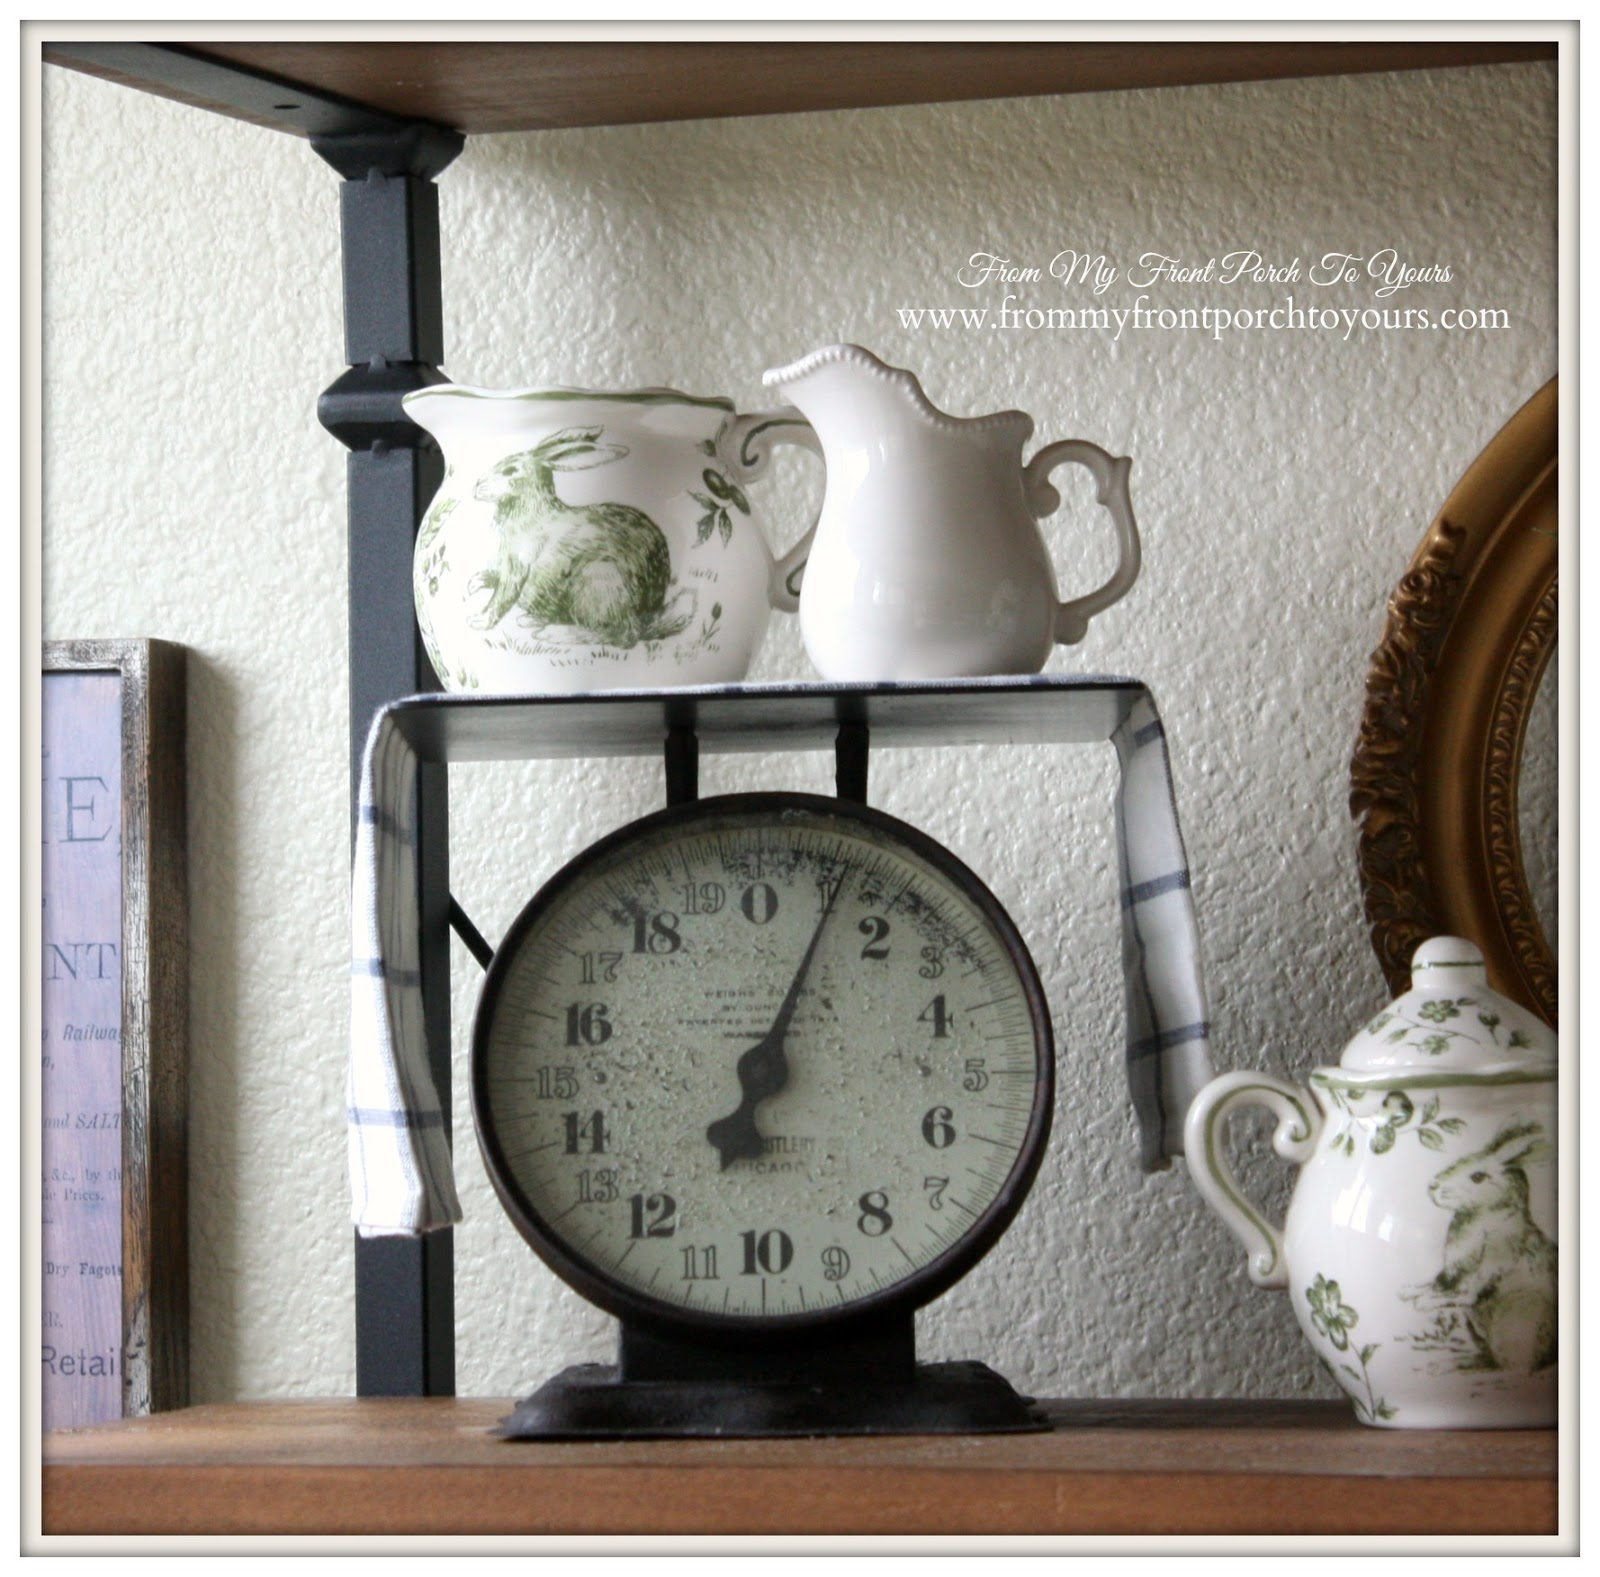 French Farmhouse Spring-Vintage Scale- Breakfast Nook- From My Front Porch To Yours